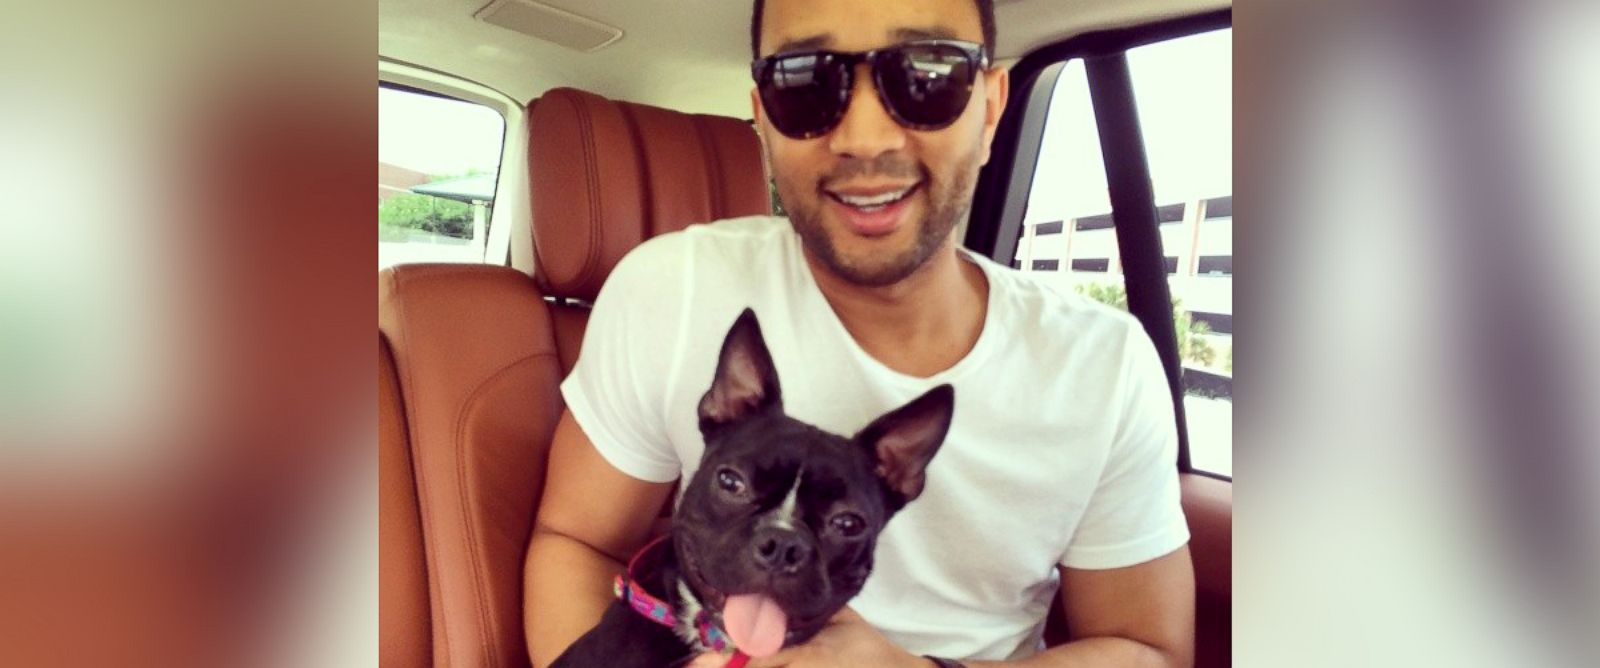 """PHOTO: John Legend shared this adorable photo of his new pup captioned; """"Meet our newest family member, Penny!"""" to his Instagram account, June 8, 2014."""